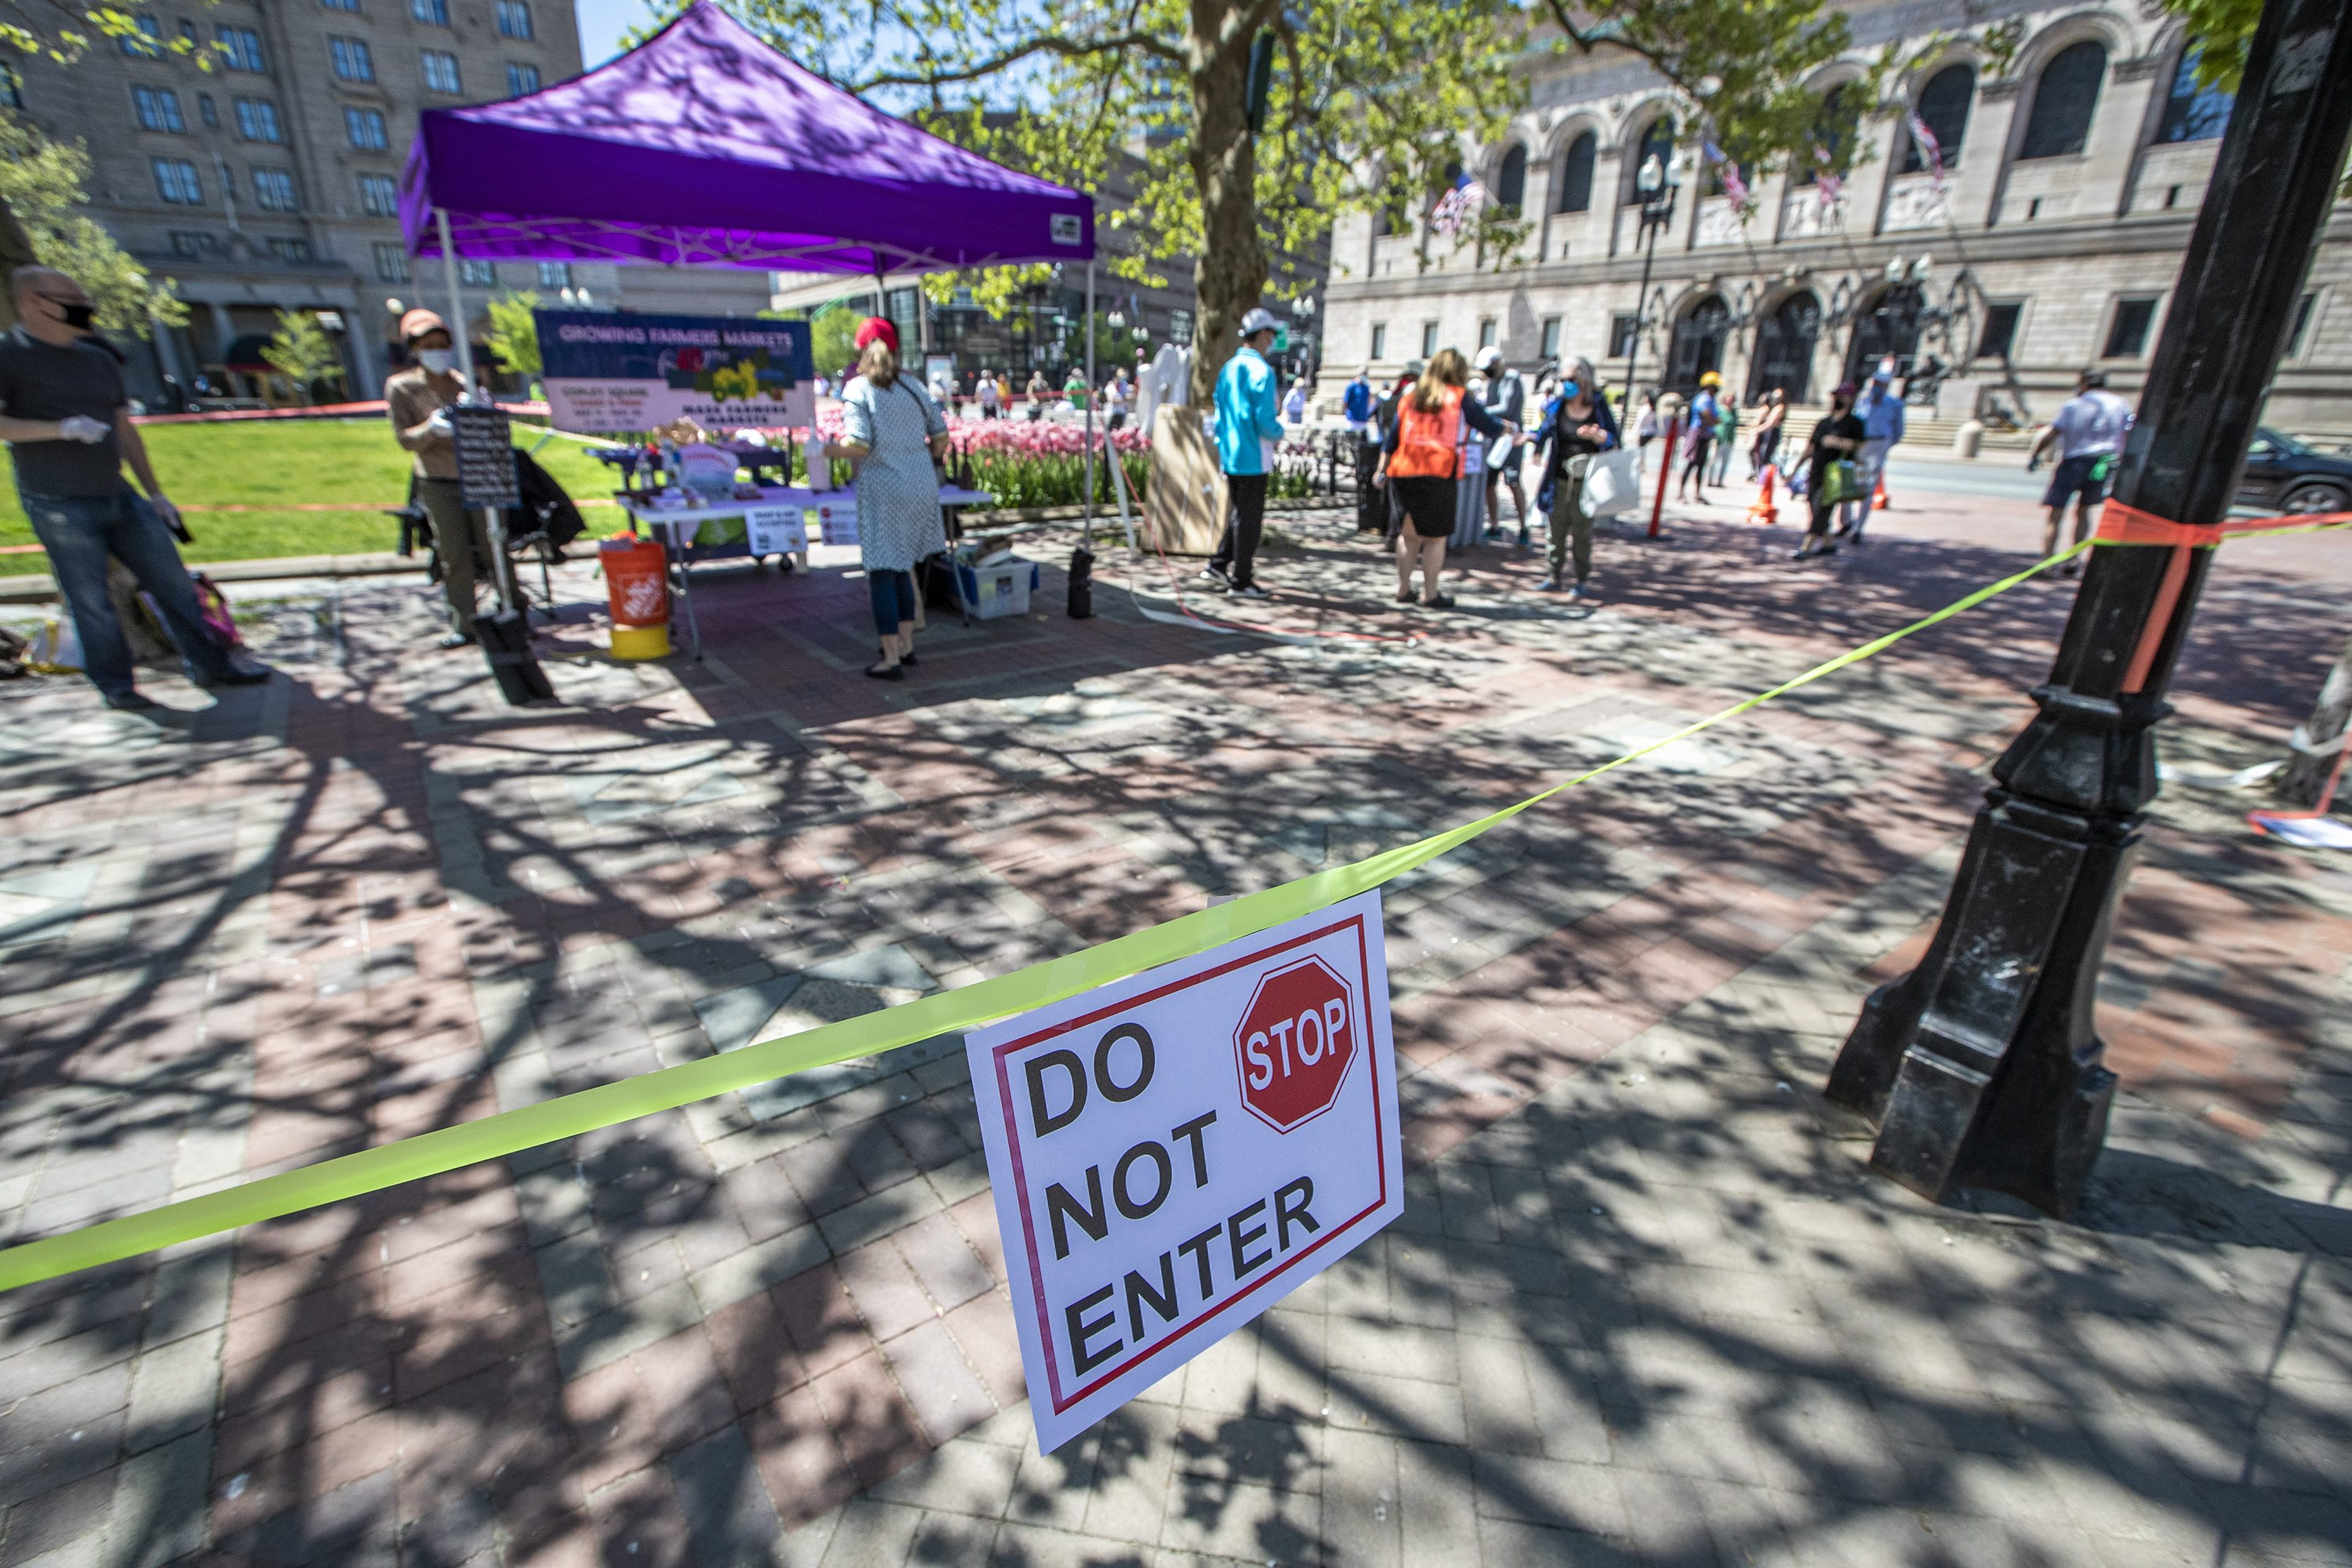 Caution tape surrounds the perimeter of the Copley Square Farmers Market, to keep people entering and exiting through one way, as it got under way Friday. (Jesse Costa/WBUR)